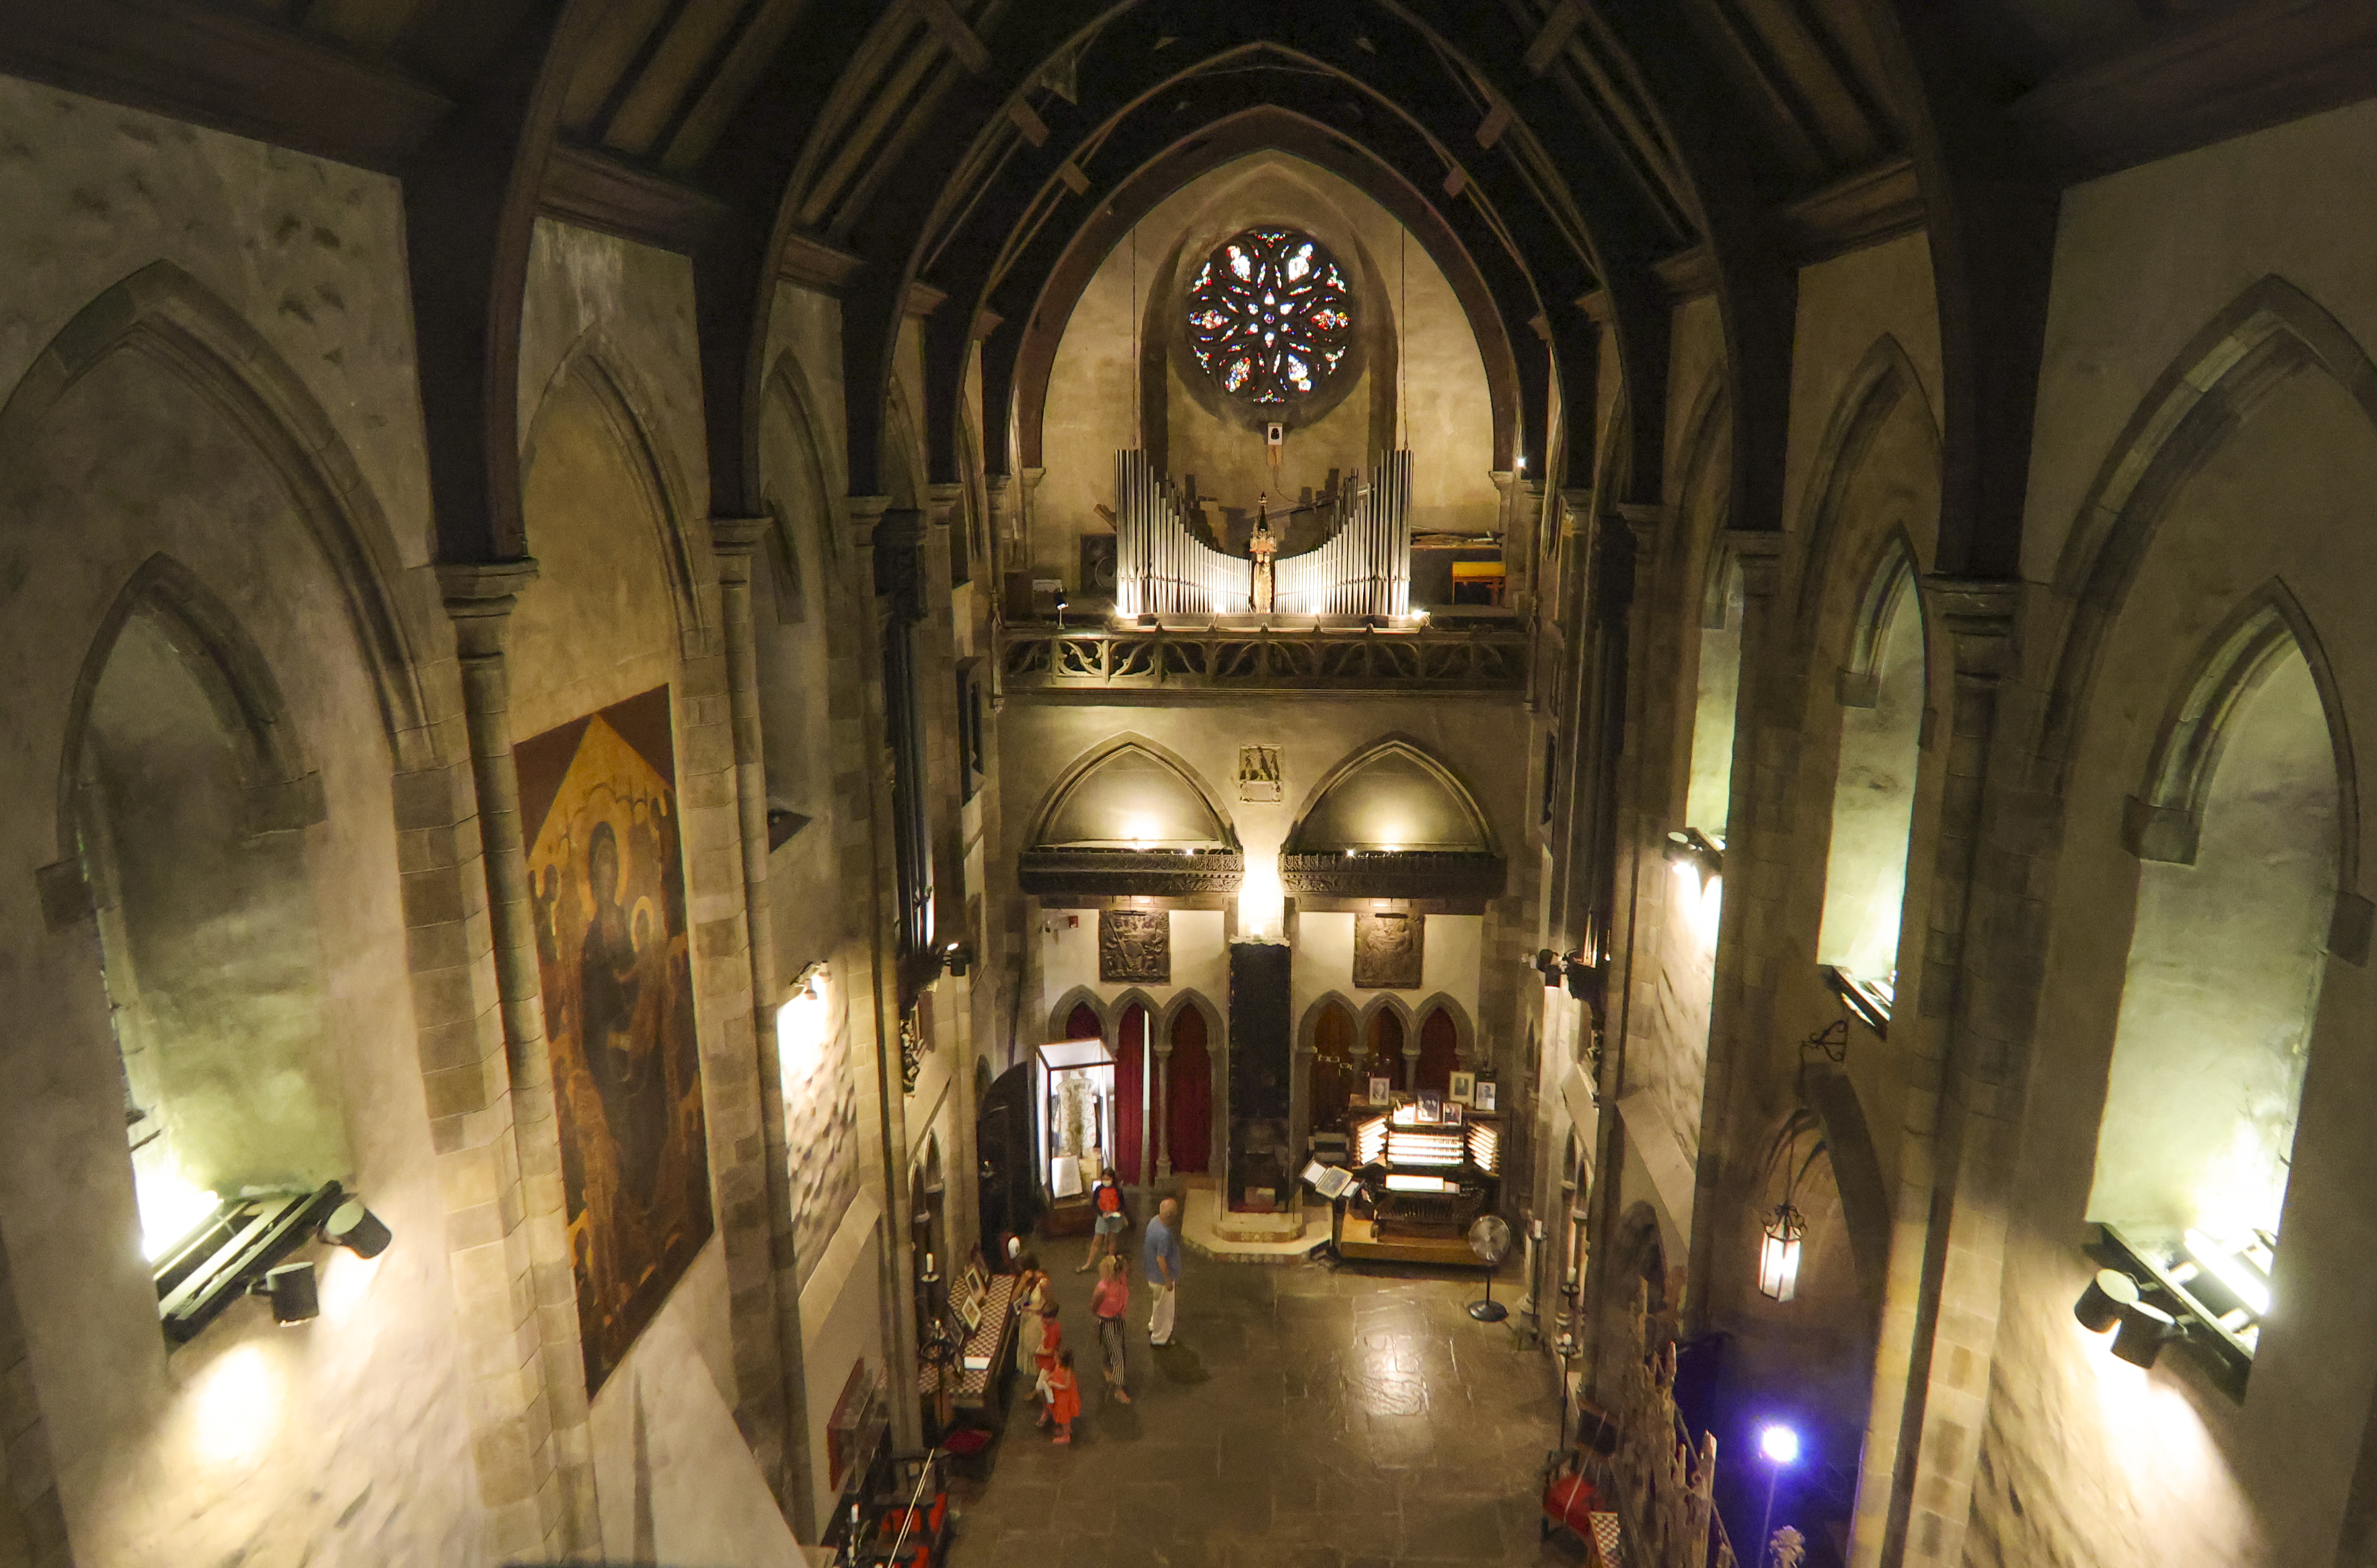 The Great Hall of the Hammond Castle Museum contains a large pipe organ which has been used for concerts and recordings by many famous organists, including Richard Ellsasser and Virgil Fox.